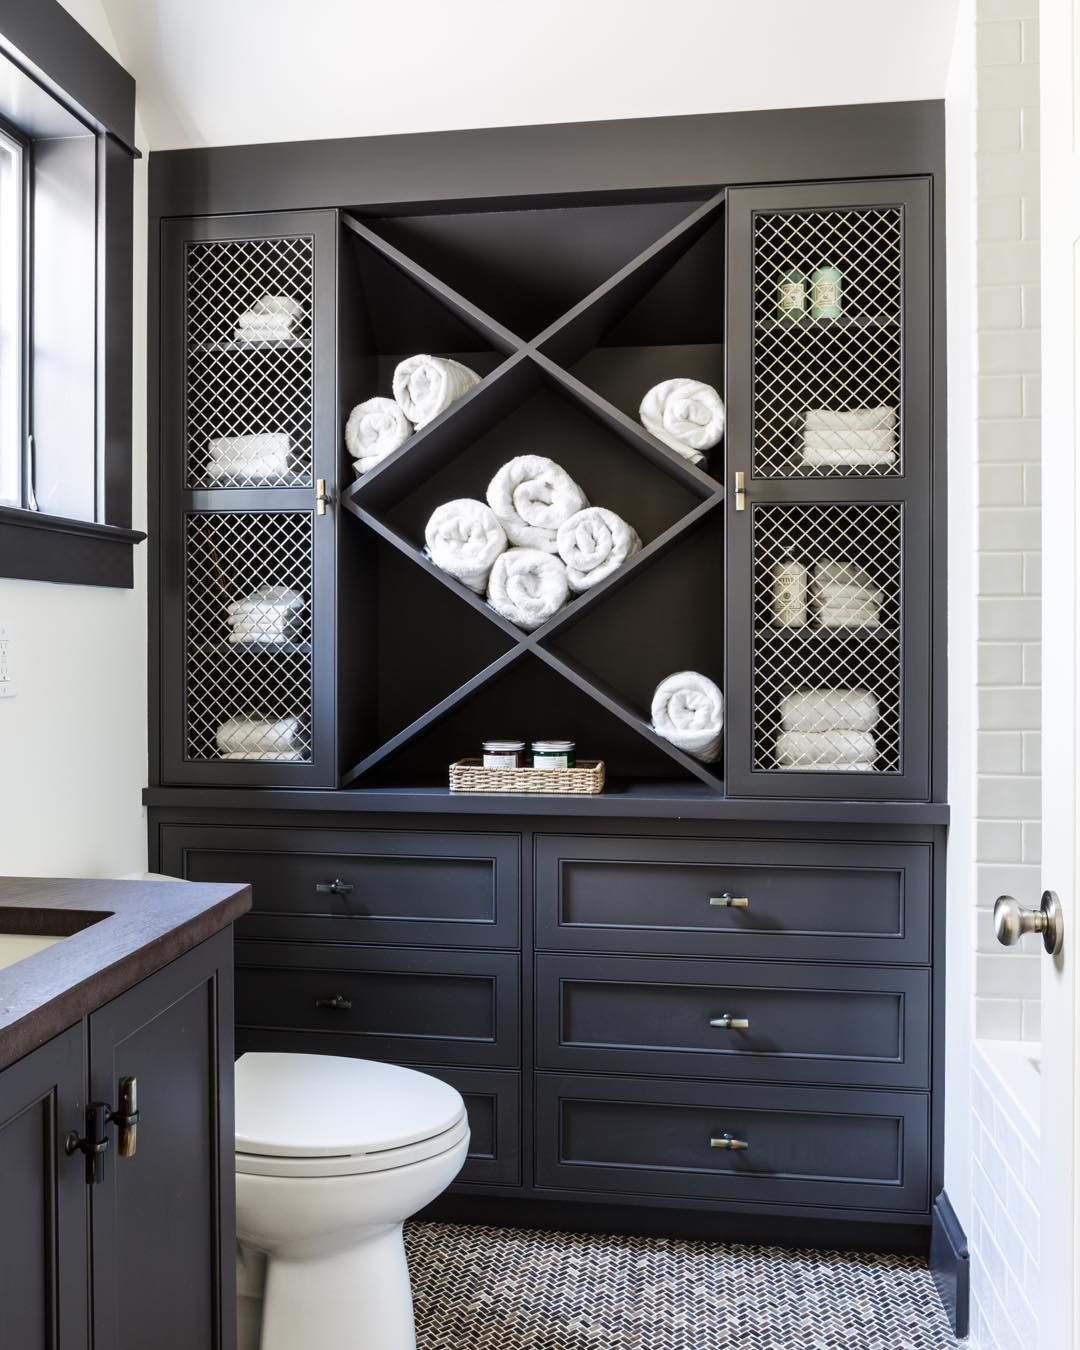 Shazalynn On Instagram Rolling Into Tuesday With This Fun Guest Bath At A Weekend Getaway We Designed With Towe In 2020 Towel Storage Small Bathroom Built In Dresser